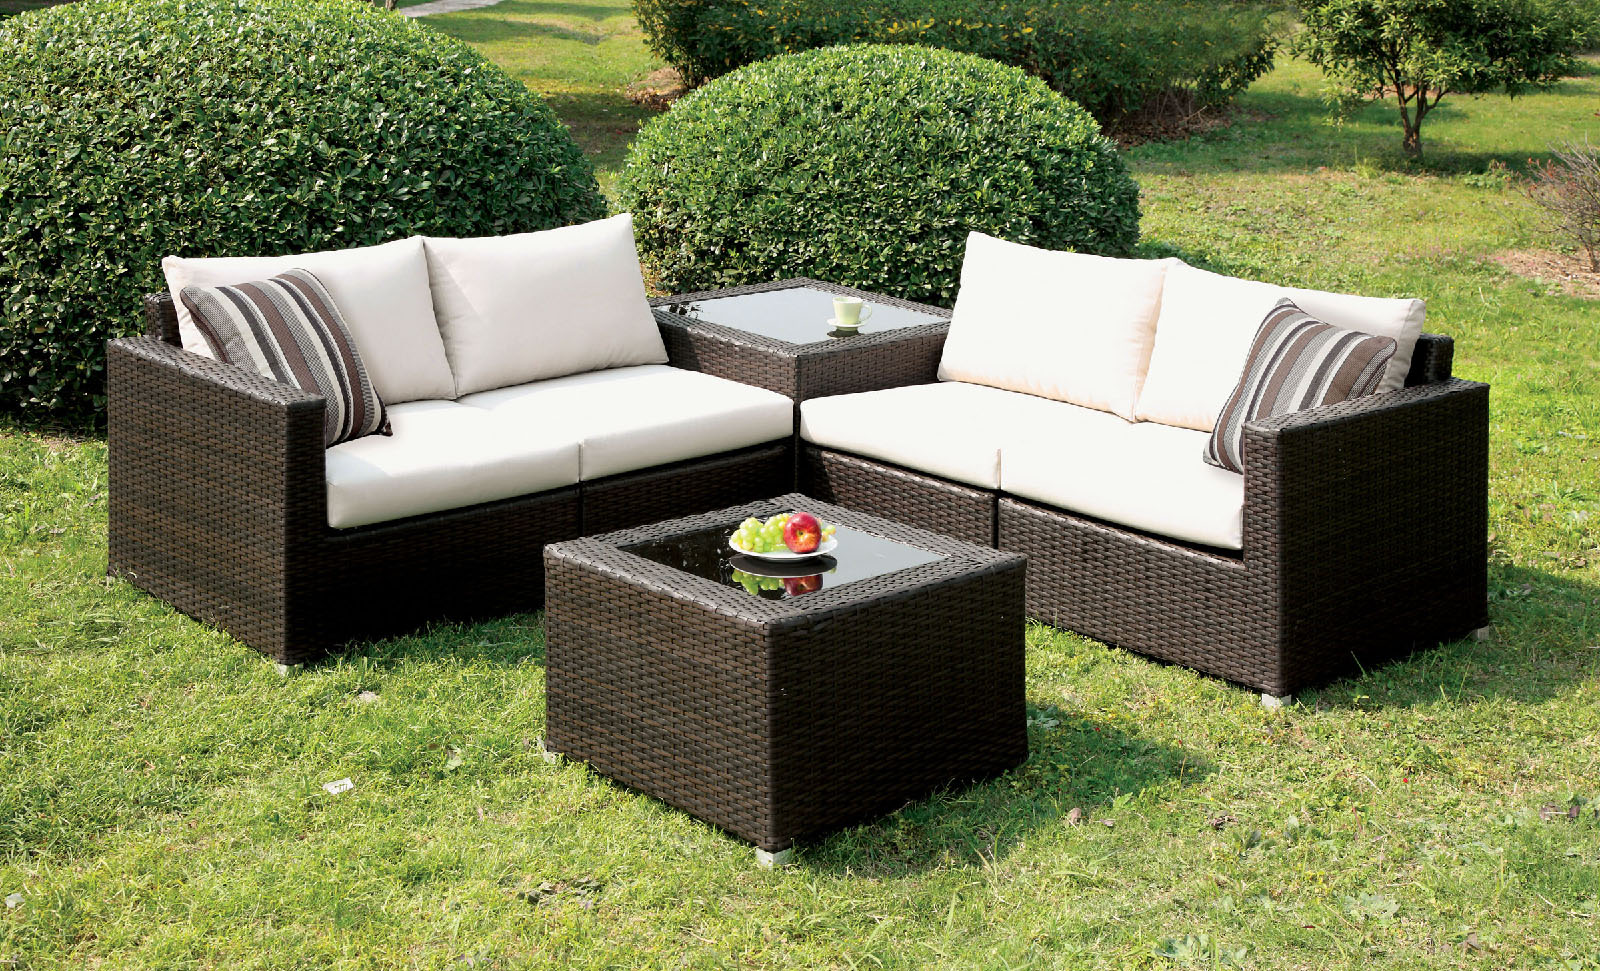 Alago patio set by furniture of america cm os1817iv for Furniture of america dallas texas